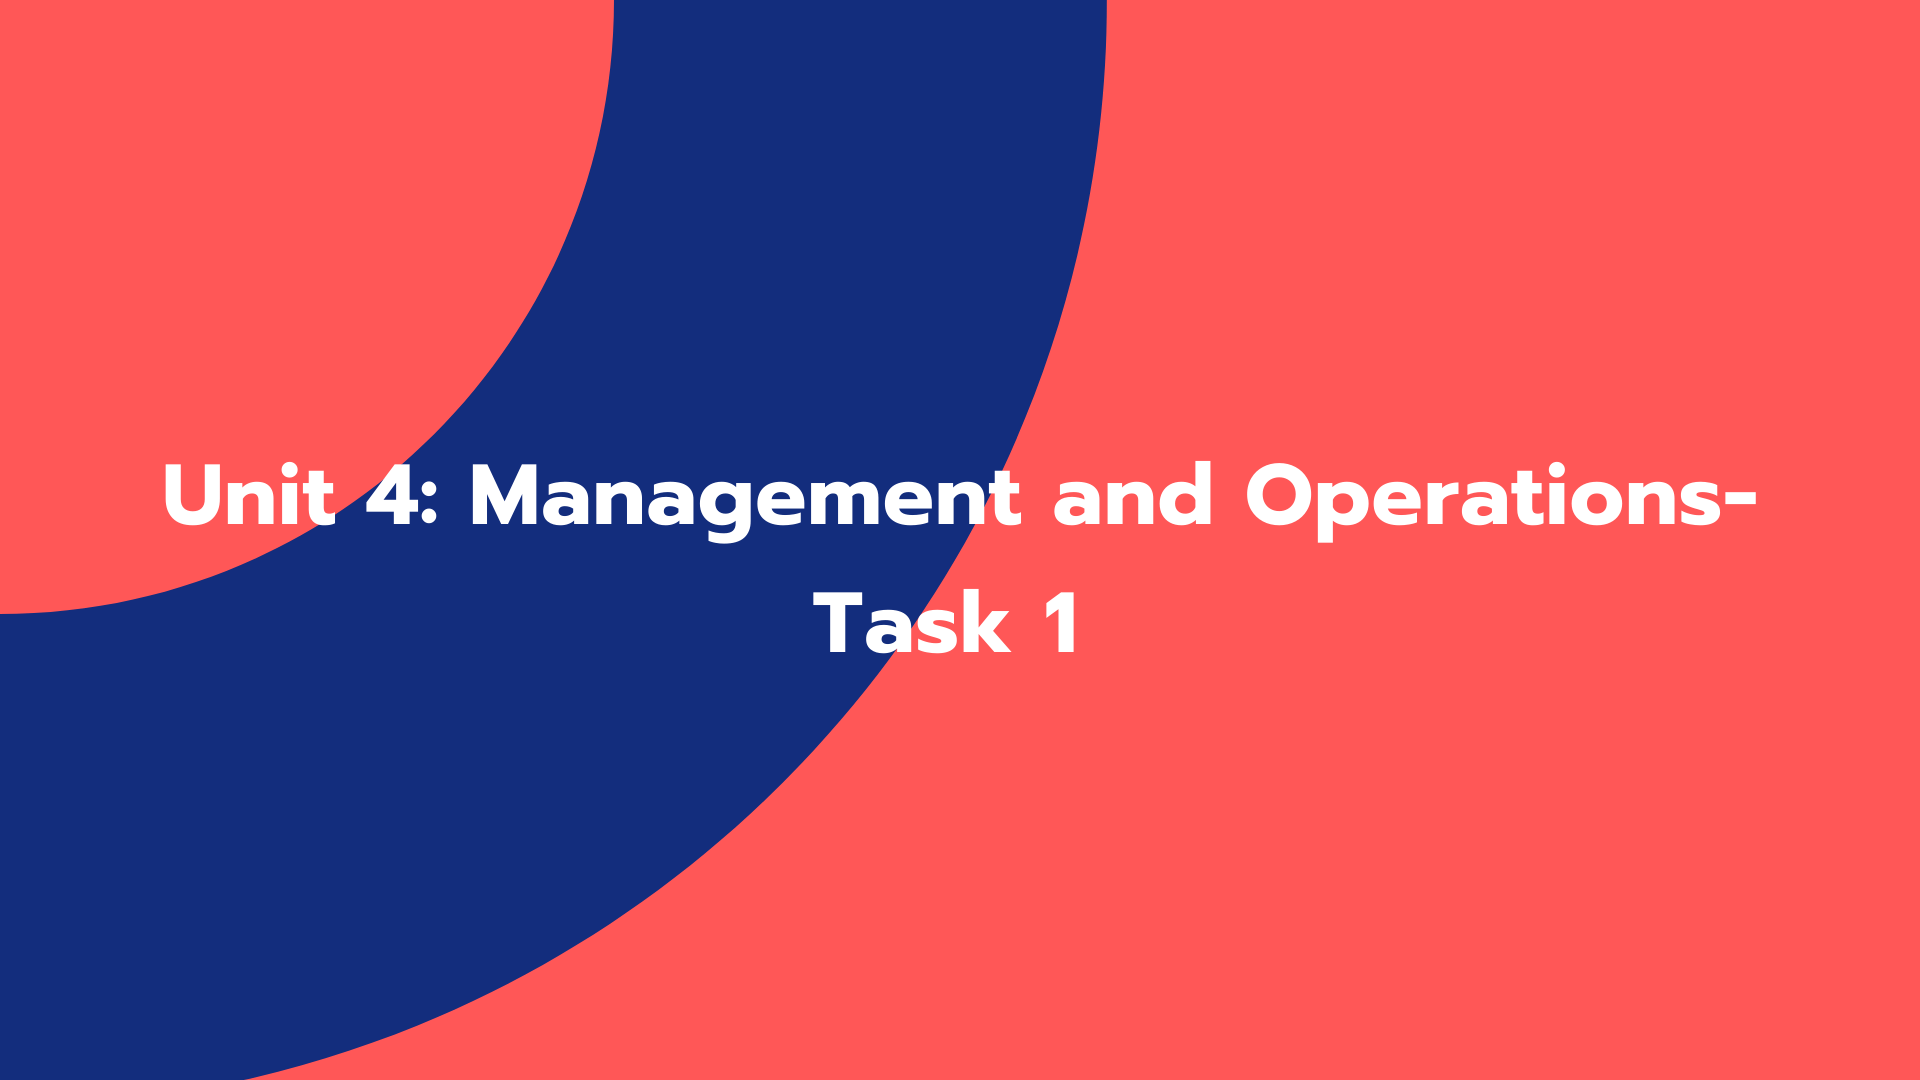 Unit 4: Management and Operations- Task 1